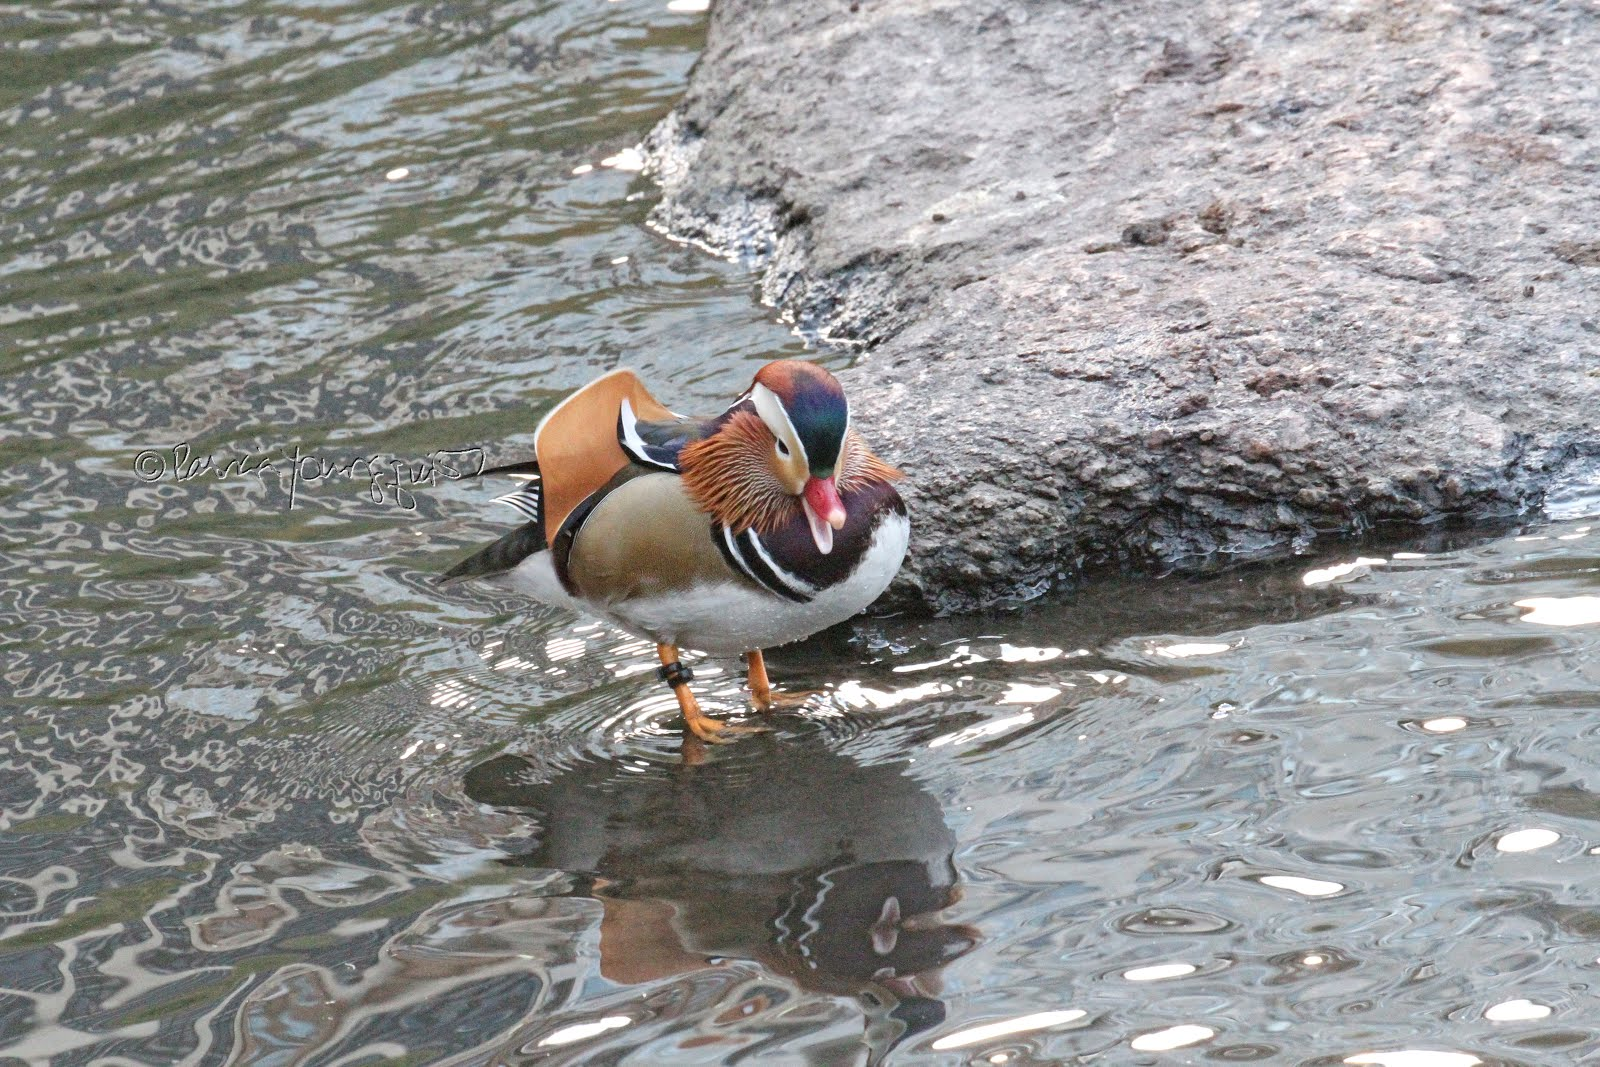 LEARN ABOUT NYC's MANDARIN DUCK + GET HIS IMAGES